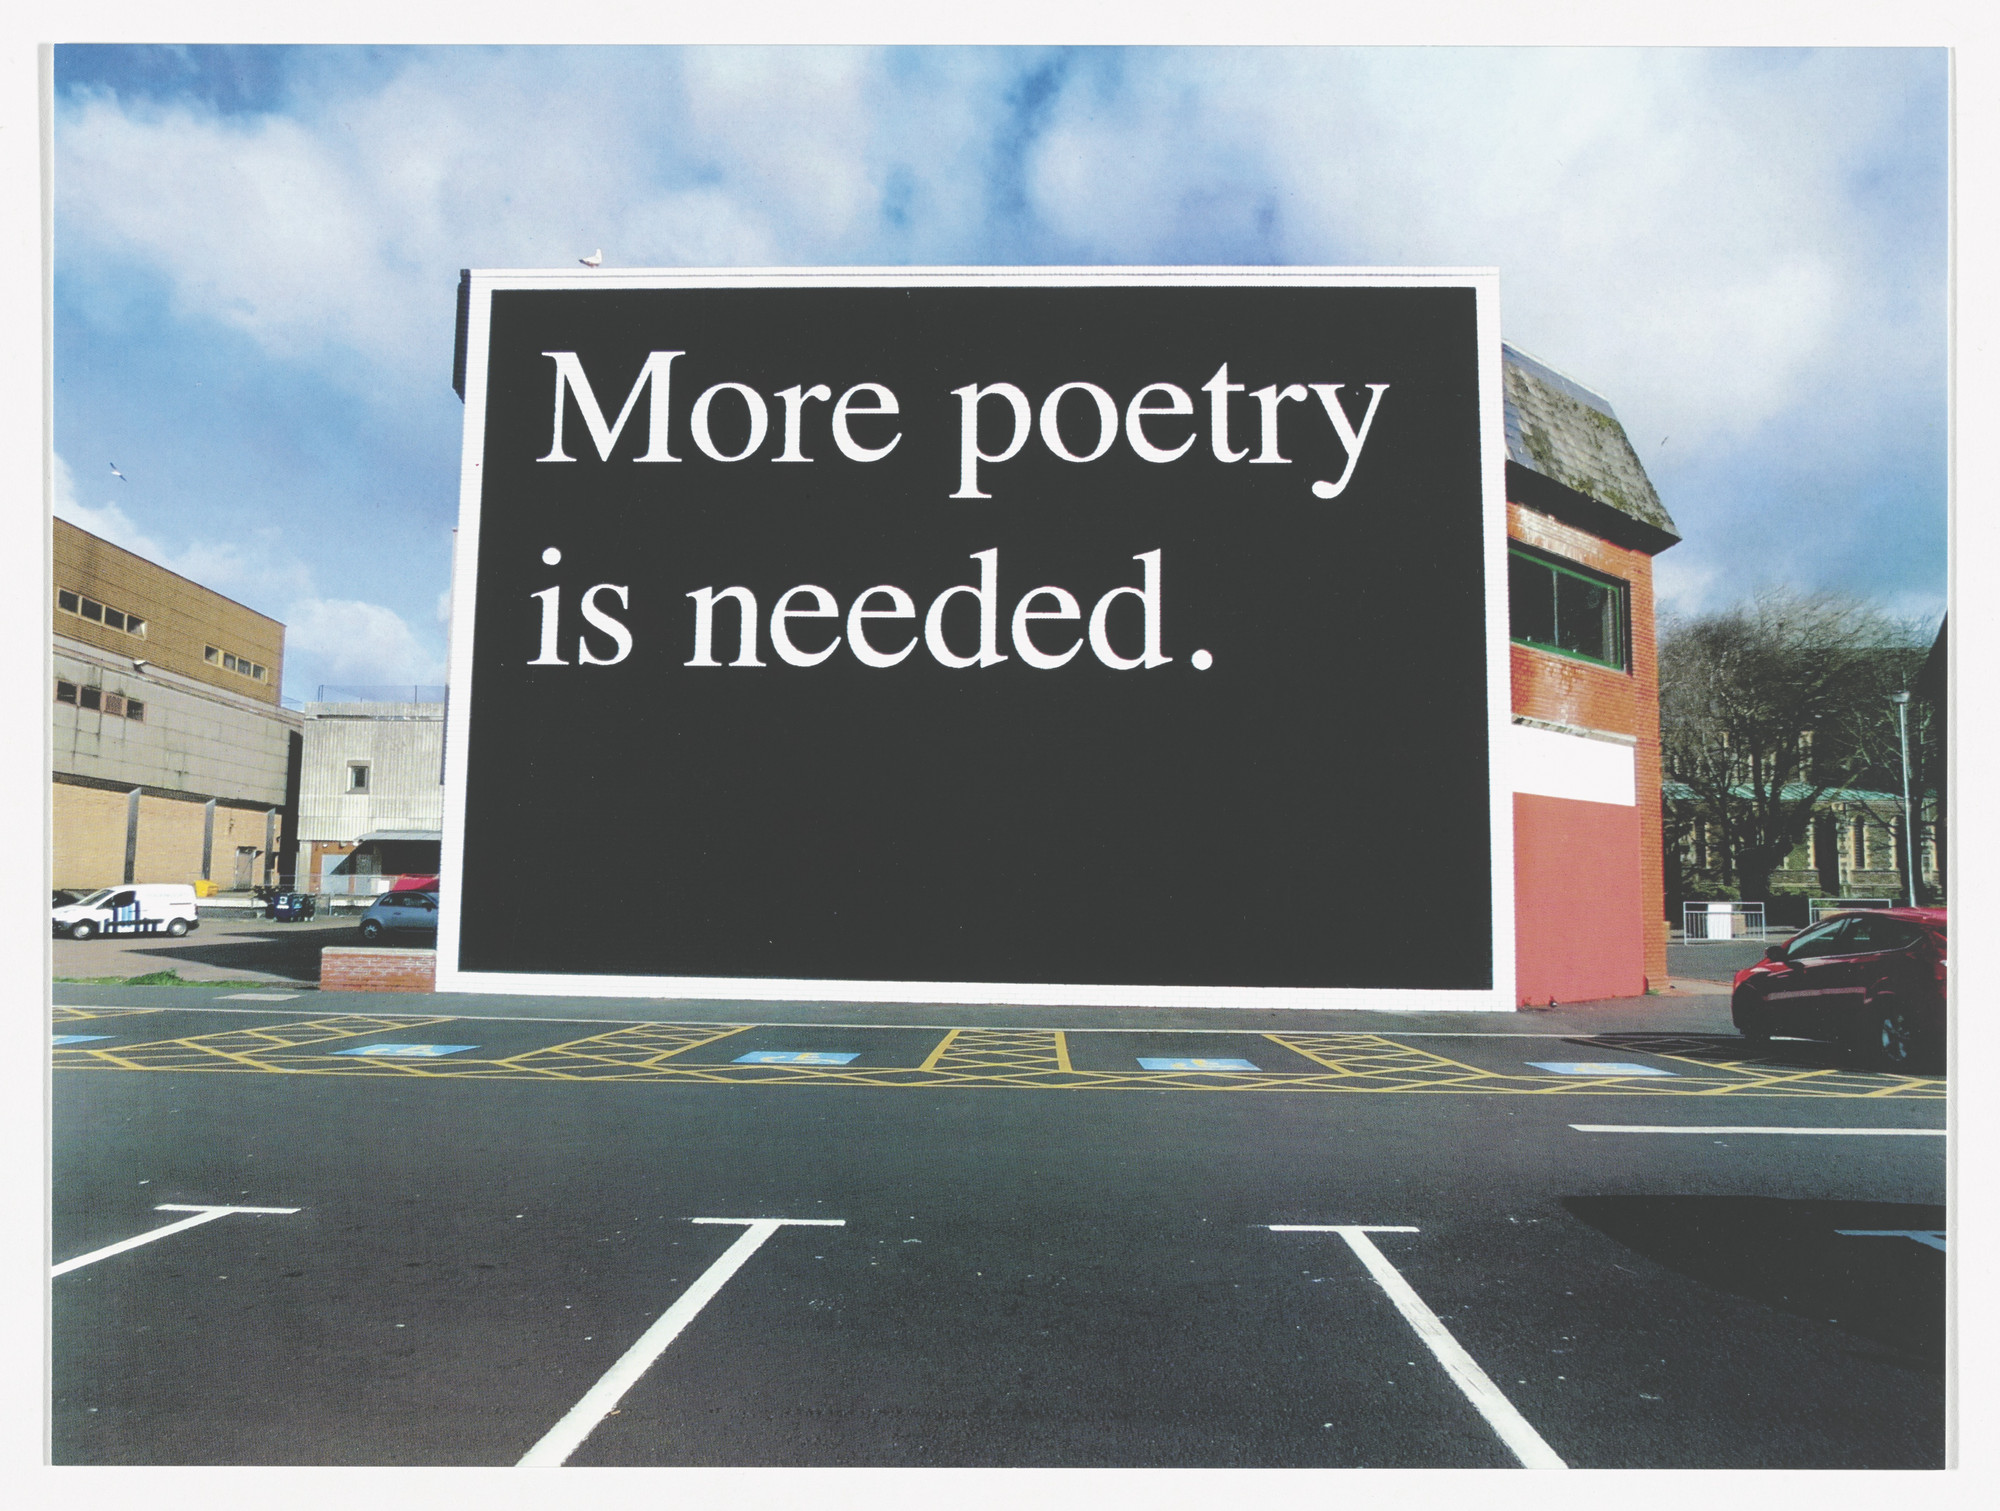 Jeremy Deller. More Poetry is Needed, Swansea, 2014 from Odds and Sods (for Parkett no. 95). 2014